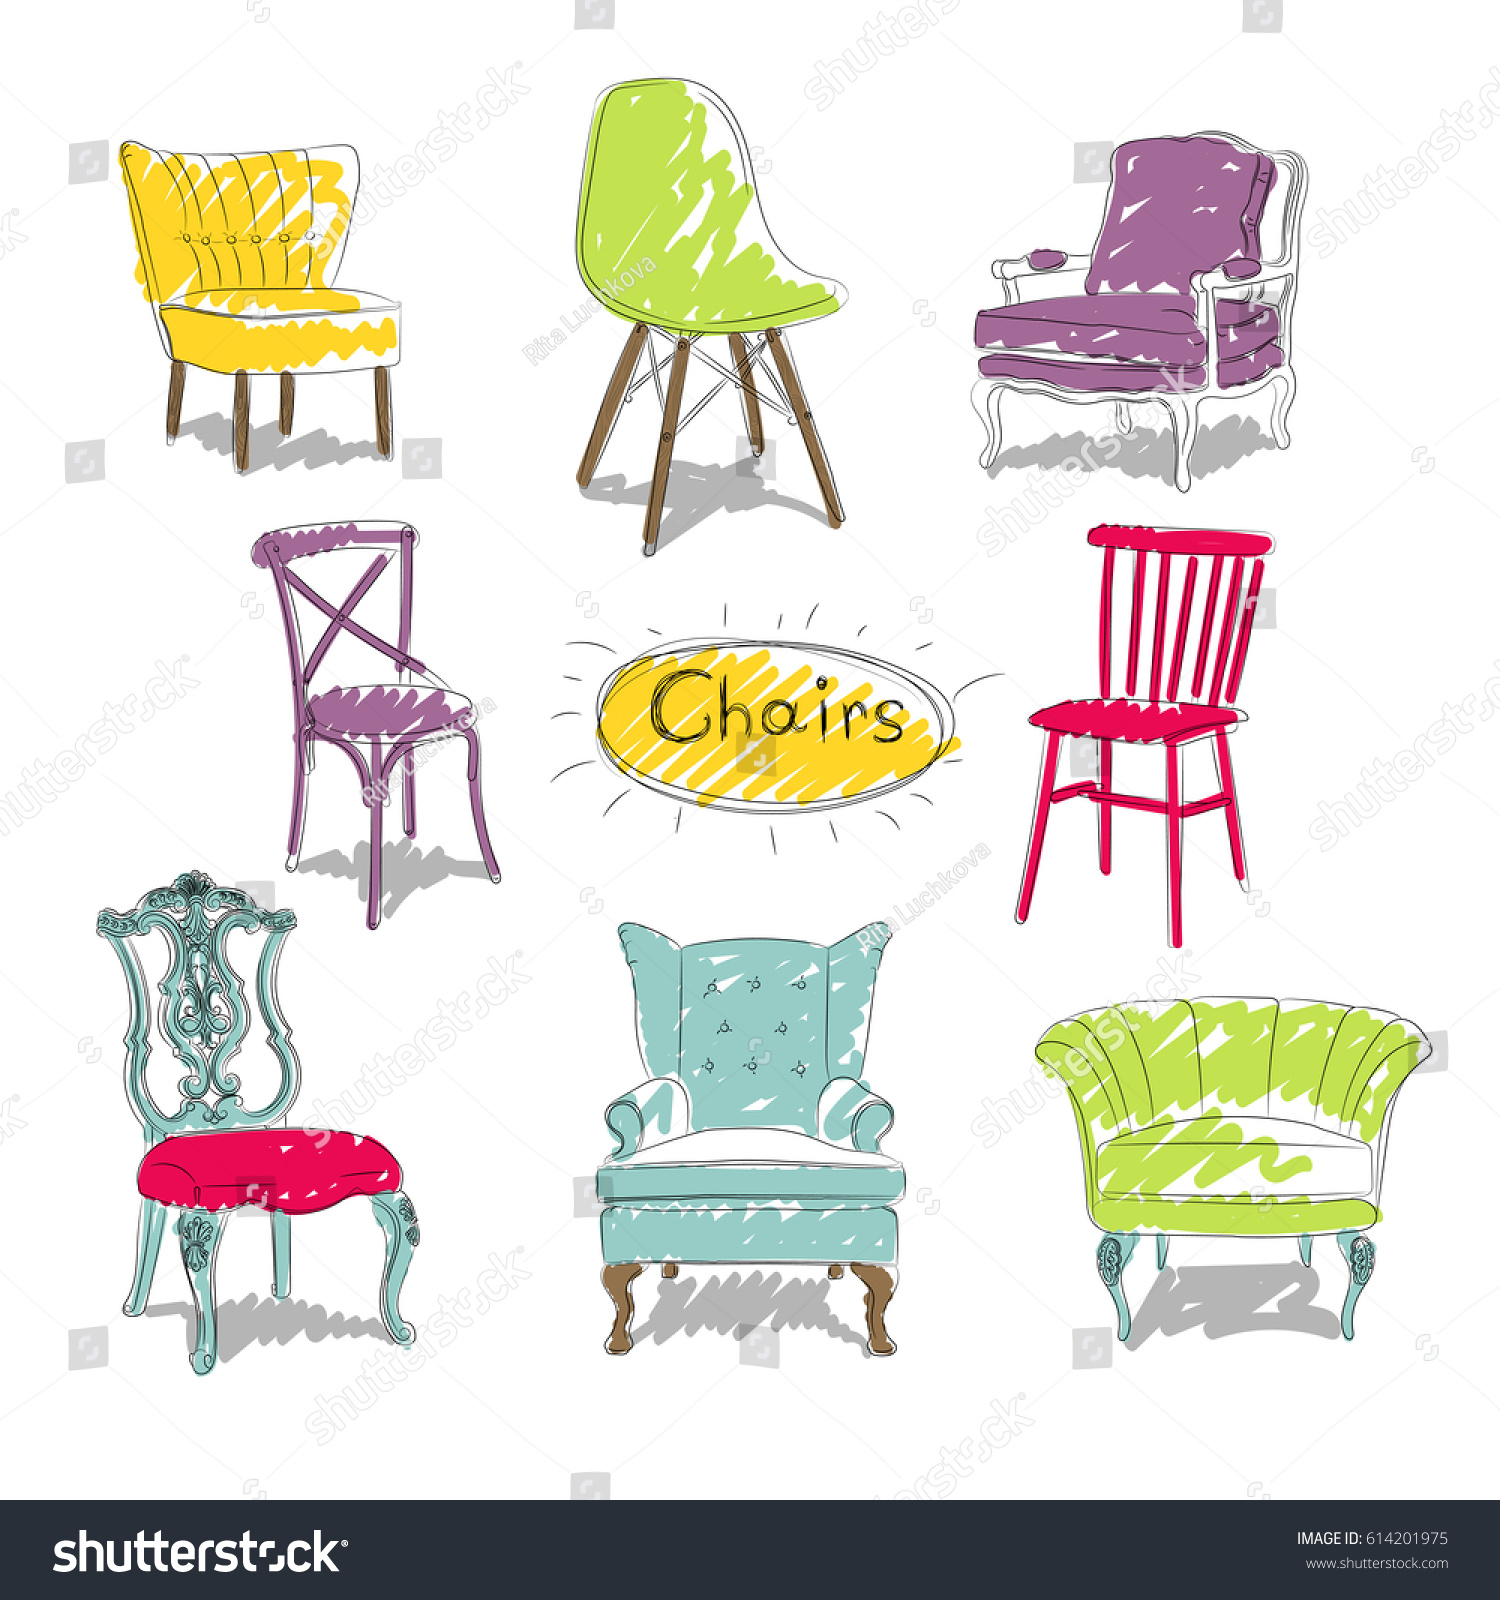 Sketch different types chairs stock illustration 614201975 for All types of chairs